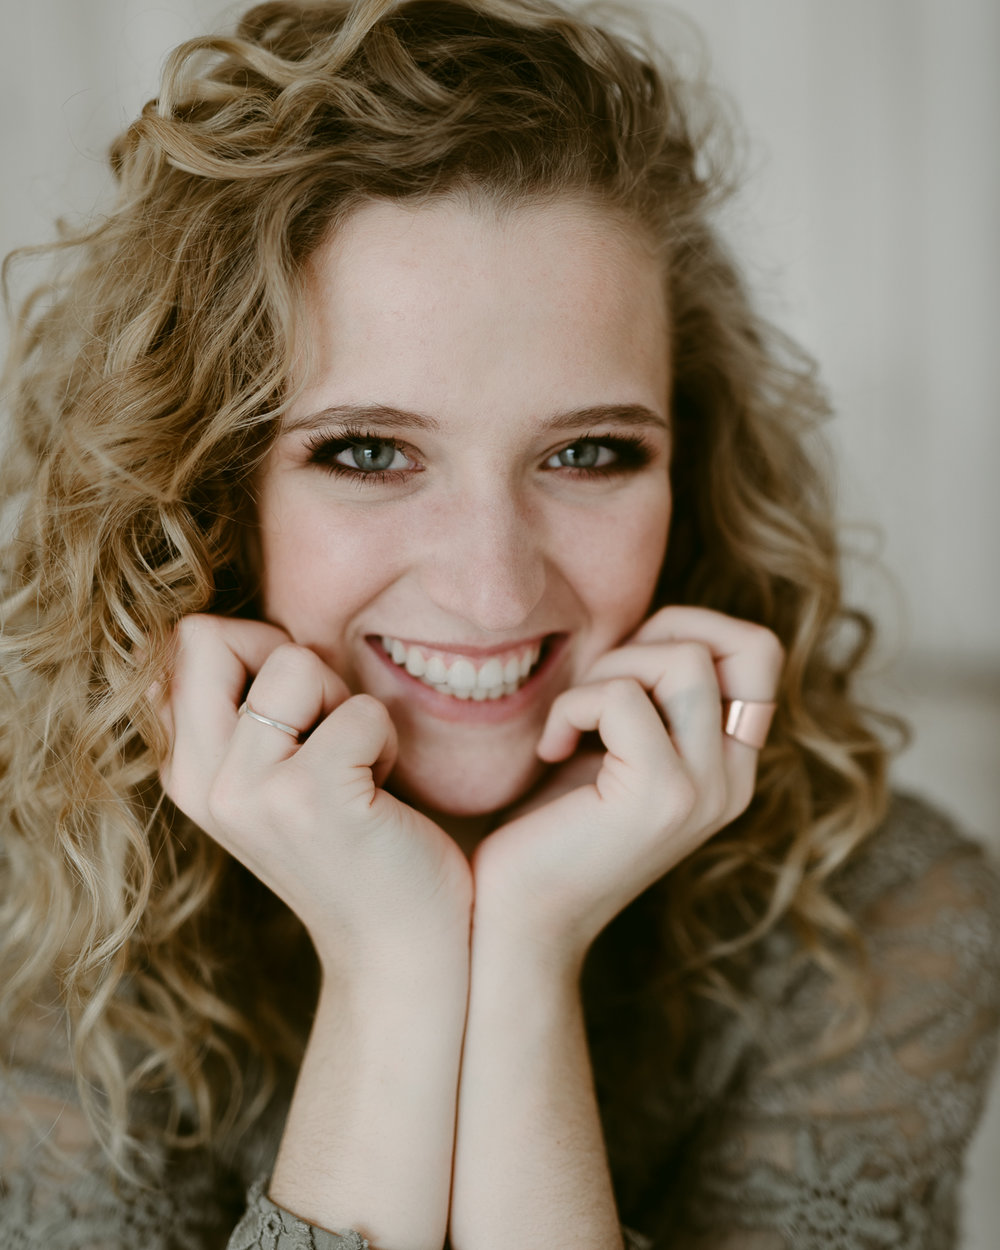 Cute Laughing Senior Portrait Photography